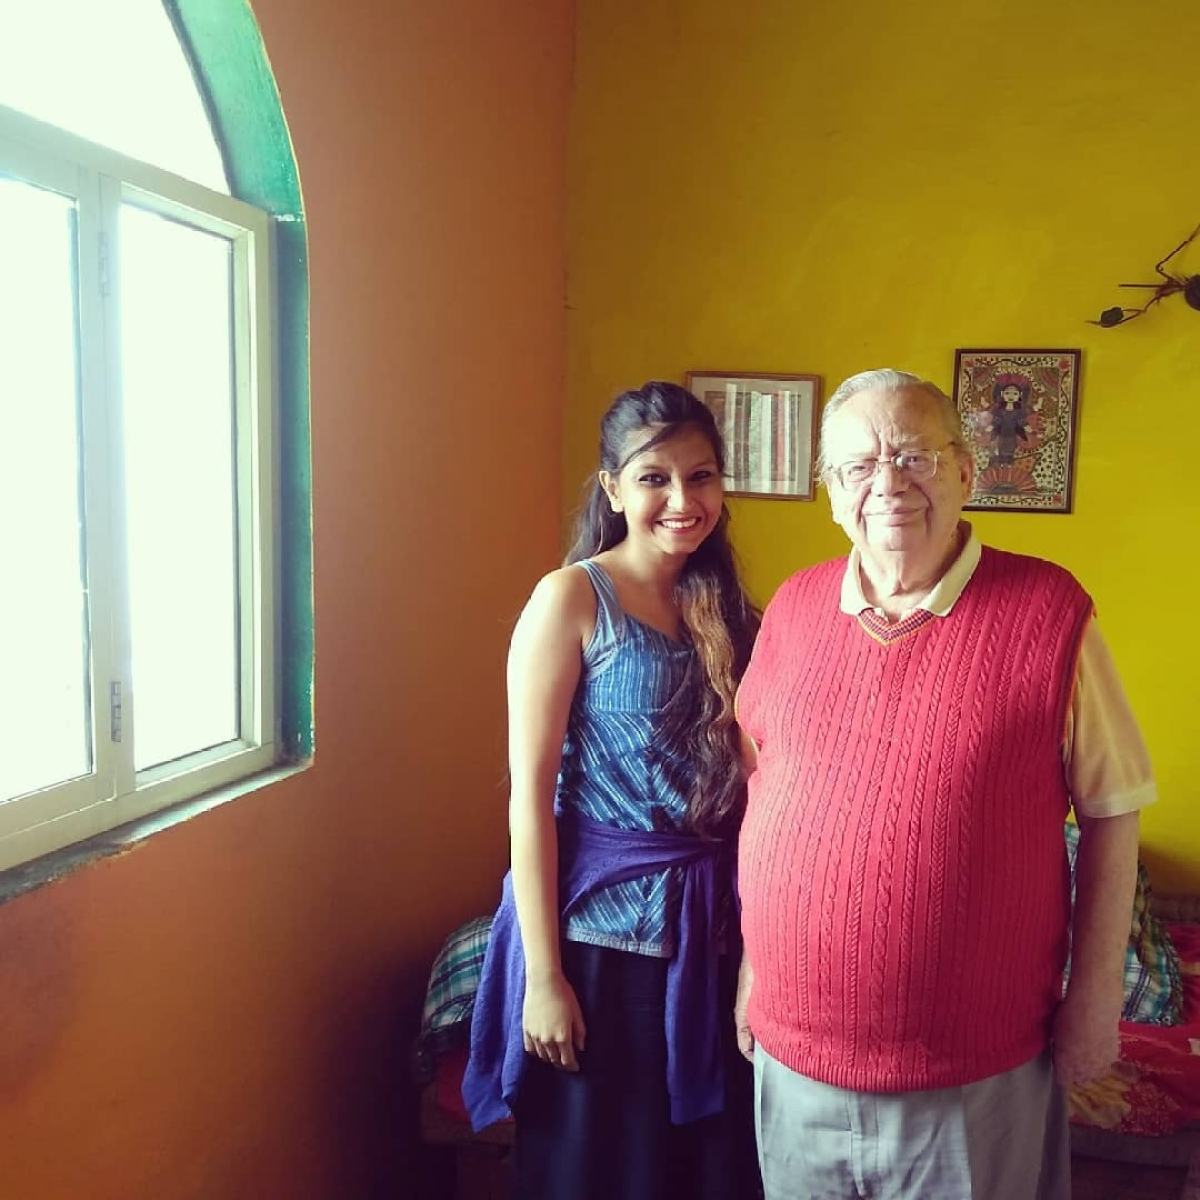 Ruskin Bond's 84th Birthday: How the Humble Ruskin Bond Welcomed Me